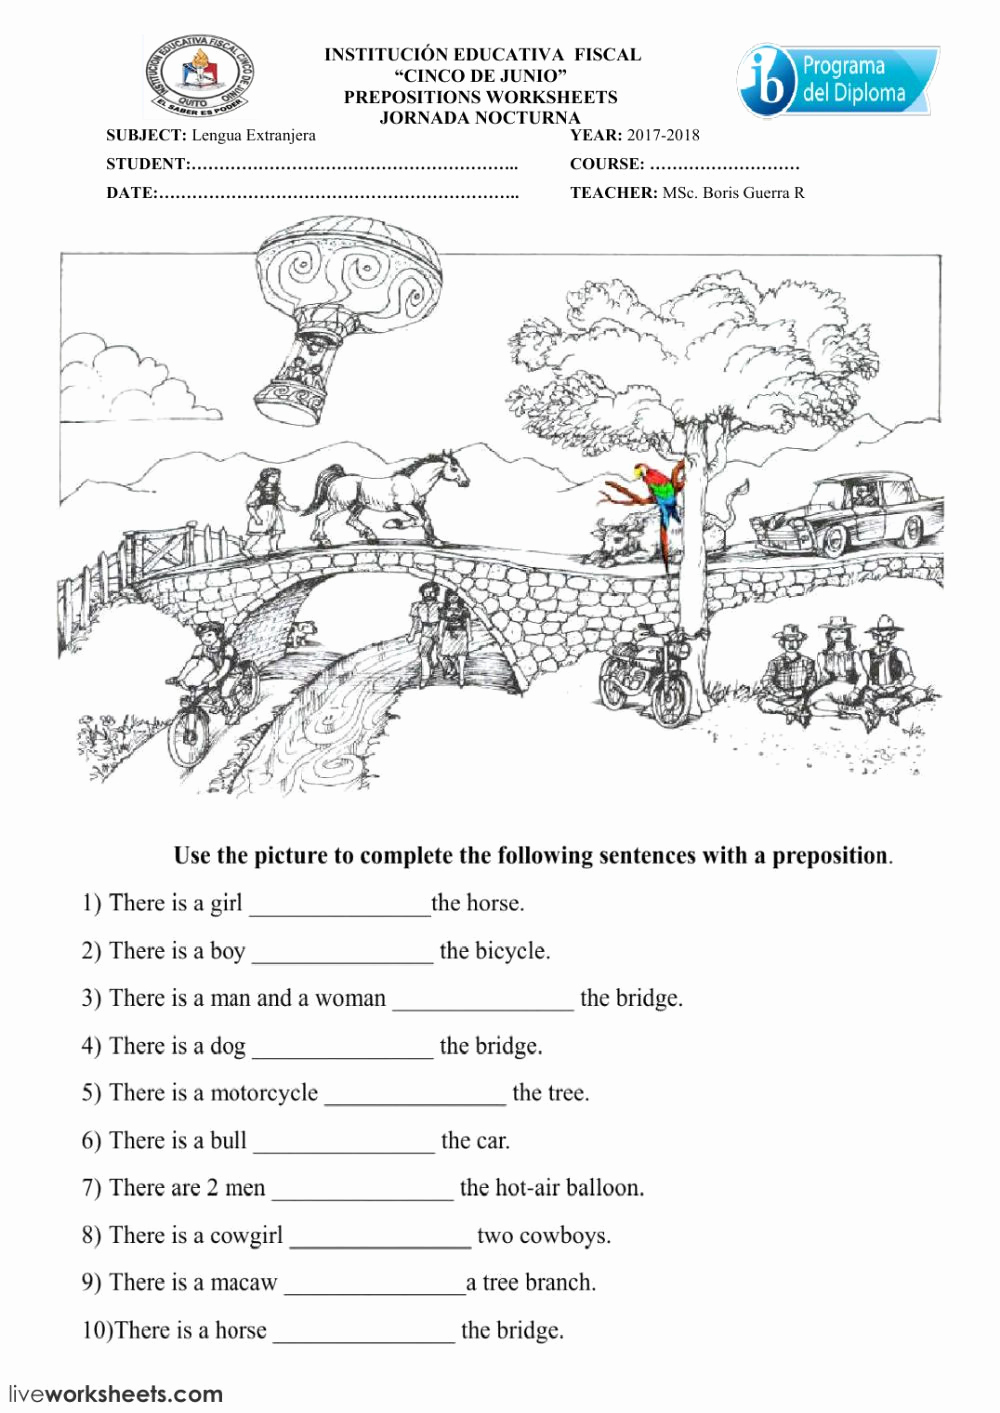 3rd Grade Preposition Worksheets Awesome 20 3rd Grade Preposition Worksheets